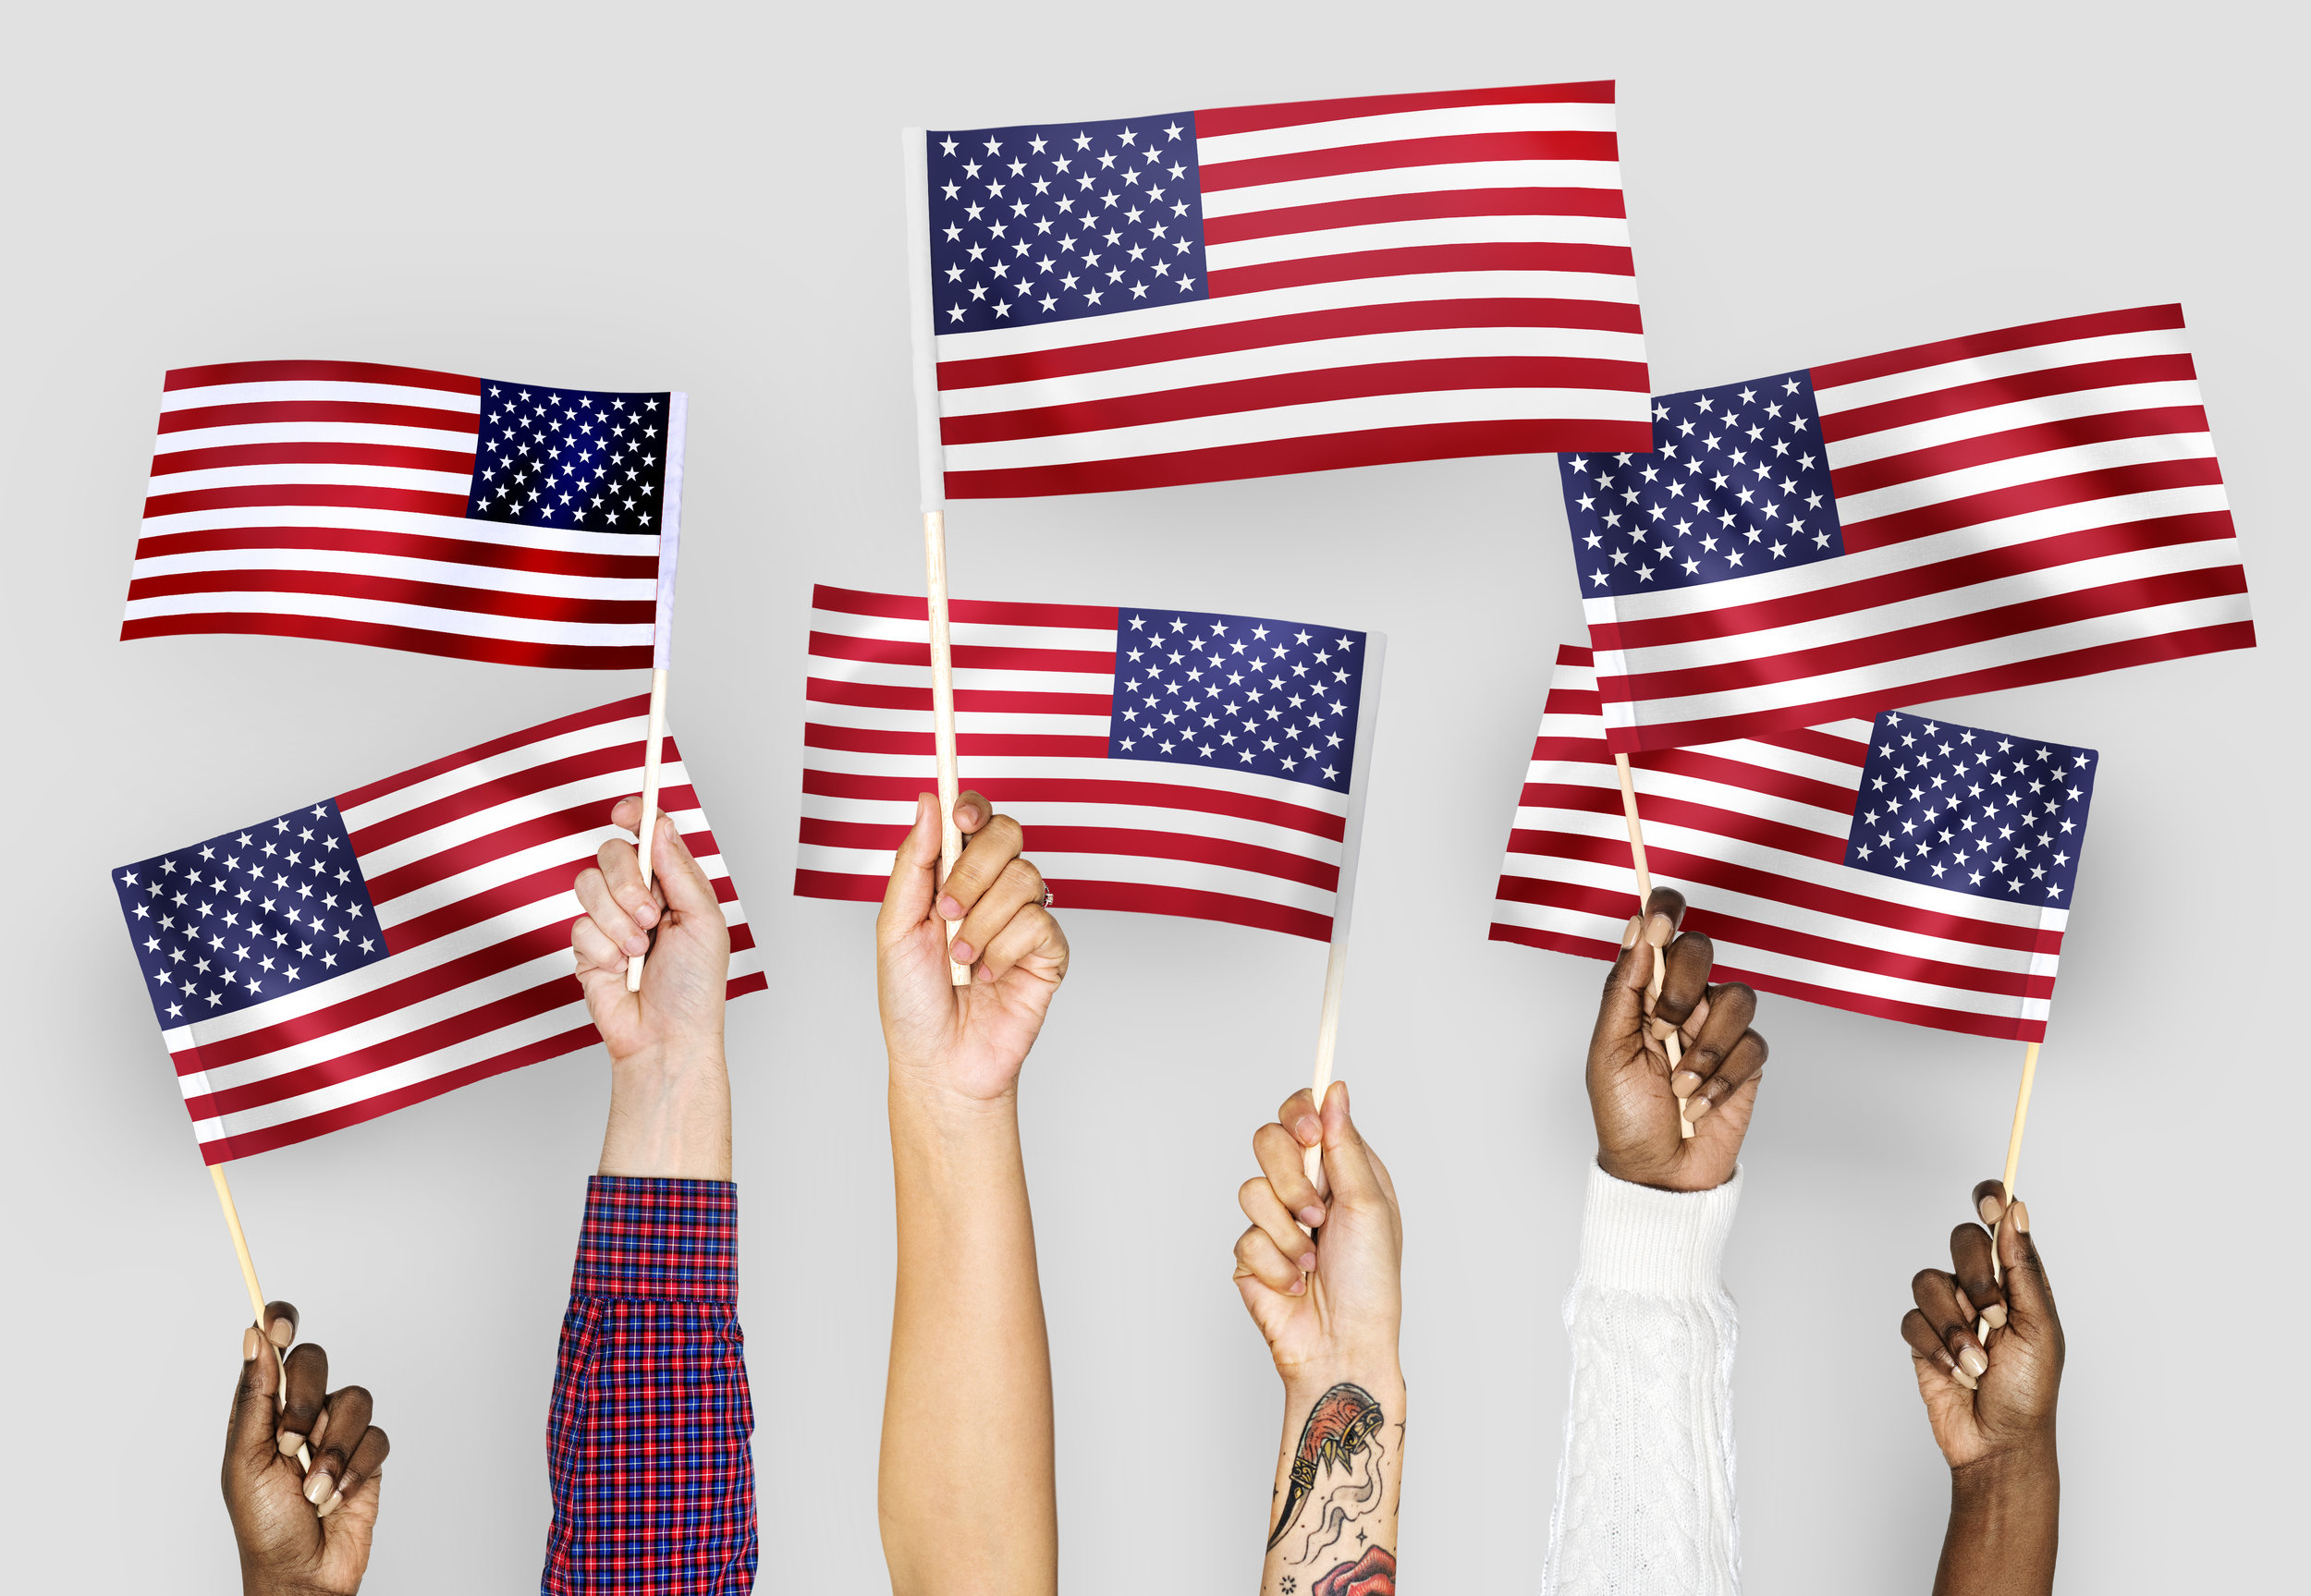 """- Every year, roughly 1 million immigrants are awarded """"green cards"""" that allow them to live and work in the U.S. as lawful permanent residents. There can be multiple paths to a green card, depending on your individual circumstances. Every year, for 50,000 people, roughly 5% of all green card recipients, that path is through a program called the """"diversity lottery.""""Since 1995, diversity visas (DVs) have facilitated the American Dream for over 1.1 million immigrants from around the globe. Since its inception, the diversity lottery program has also drawn undue criticism. The program's opponents often falsely portray the program as an open door through which immigrants can enter the country without any screening or checks. Despite the intensive security and health screenings applicant's go through, opponents make these arguments to advocate for the program's cancellation.The application deadline for the next diversity lottery (DV-2020) is November 6, 2018. Time is of the essence here, so let's separate the facts from the fear-mongering. Here is what you need to know if you or a loved one is interested in obtaining a Diversity Visa/green card lottery."""